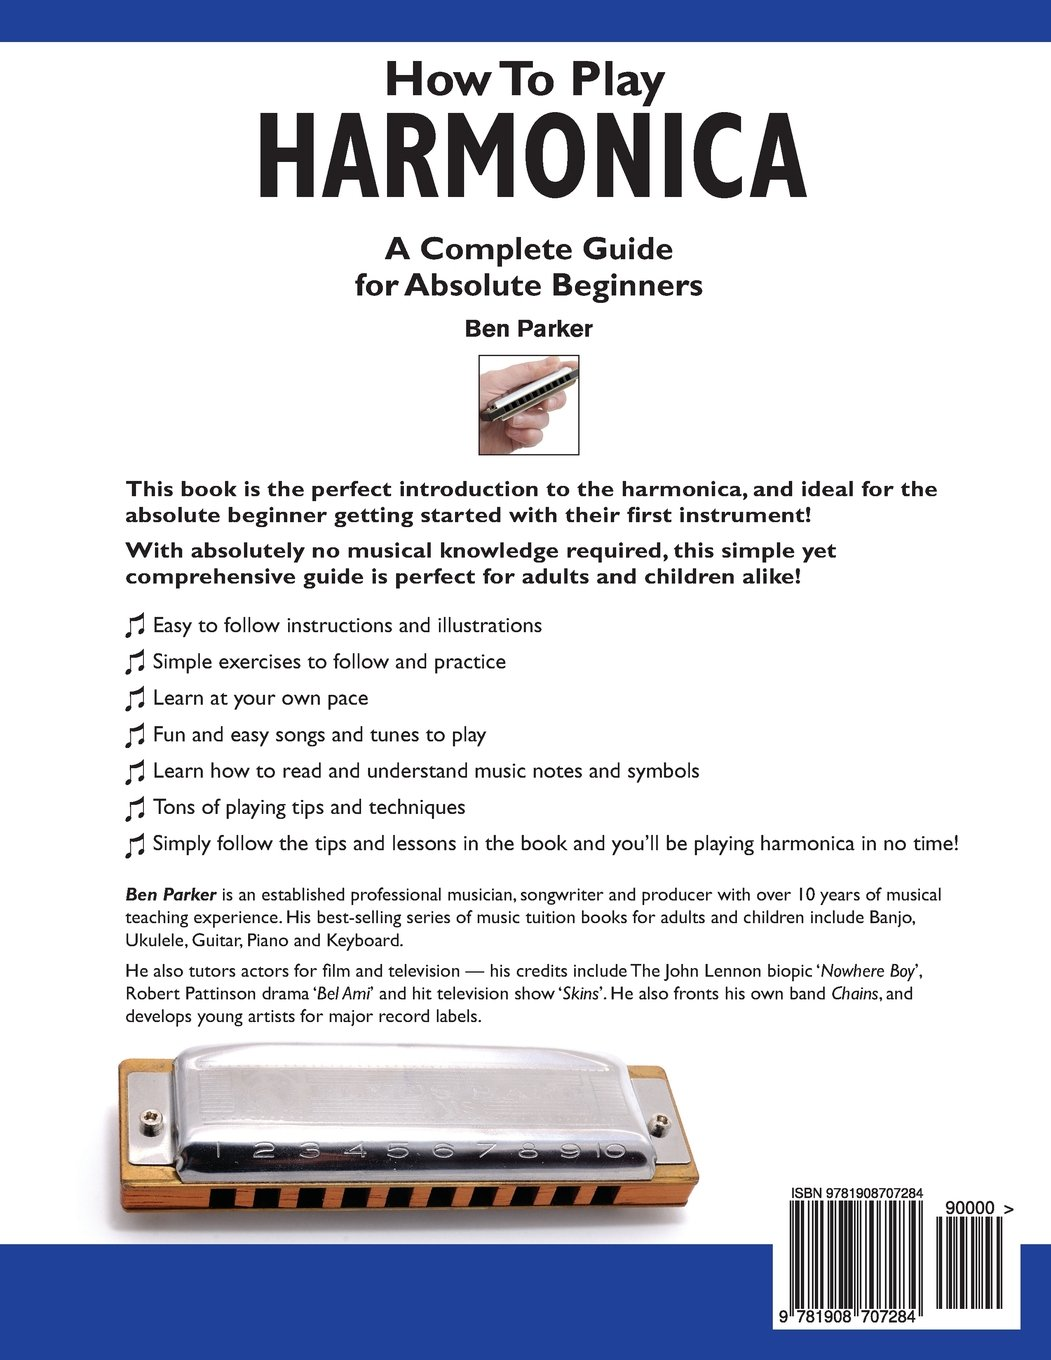 How to Play Harmonica - Harmonica Lessons for Beginners